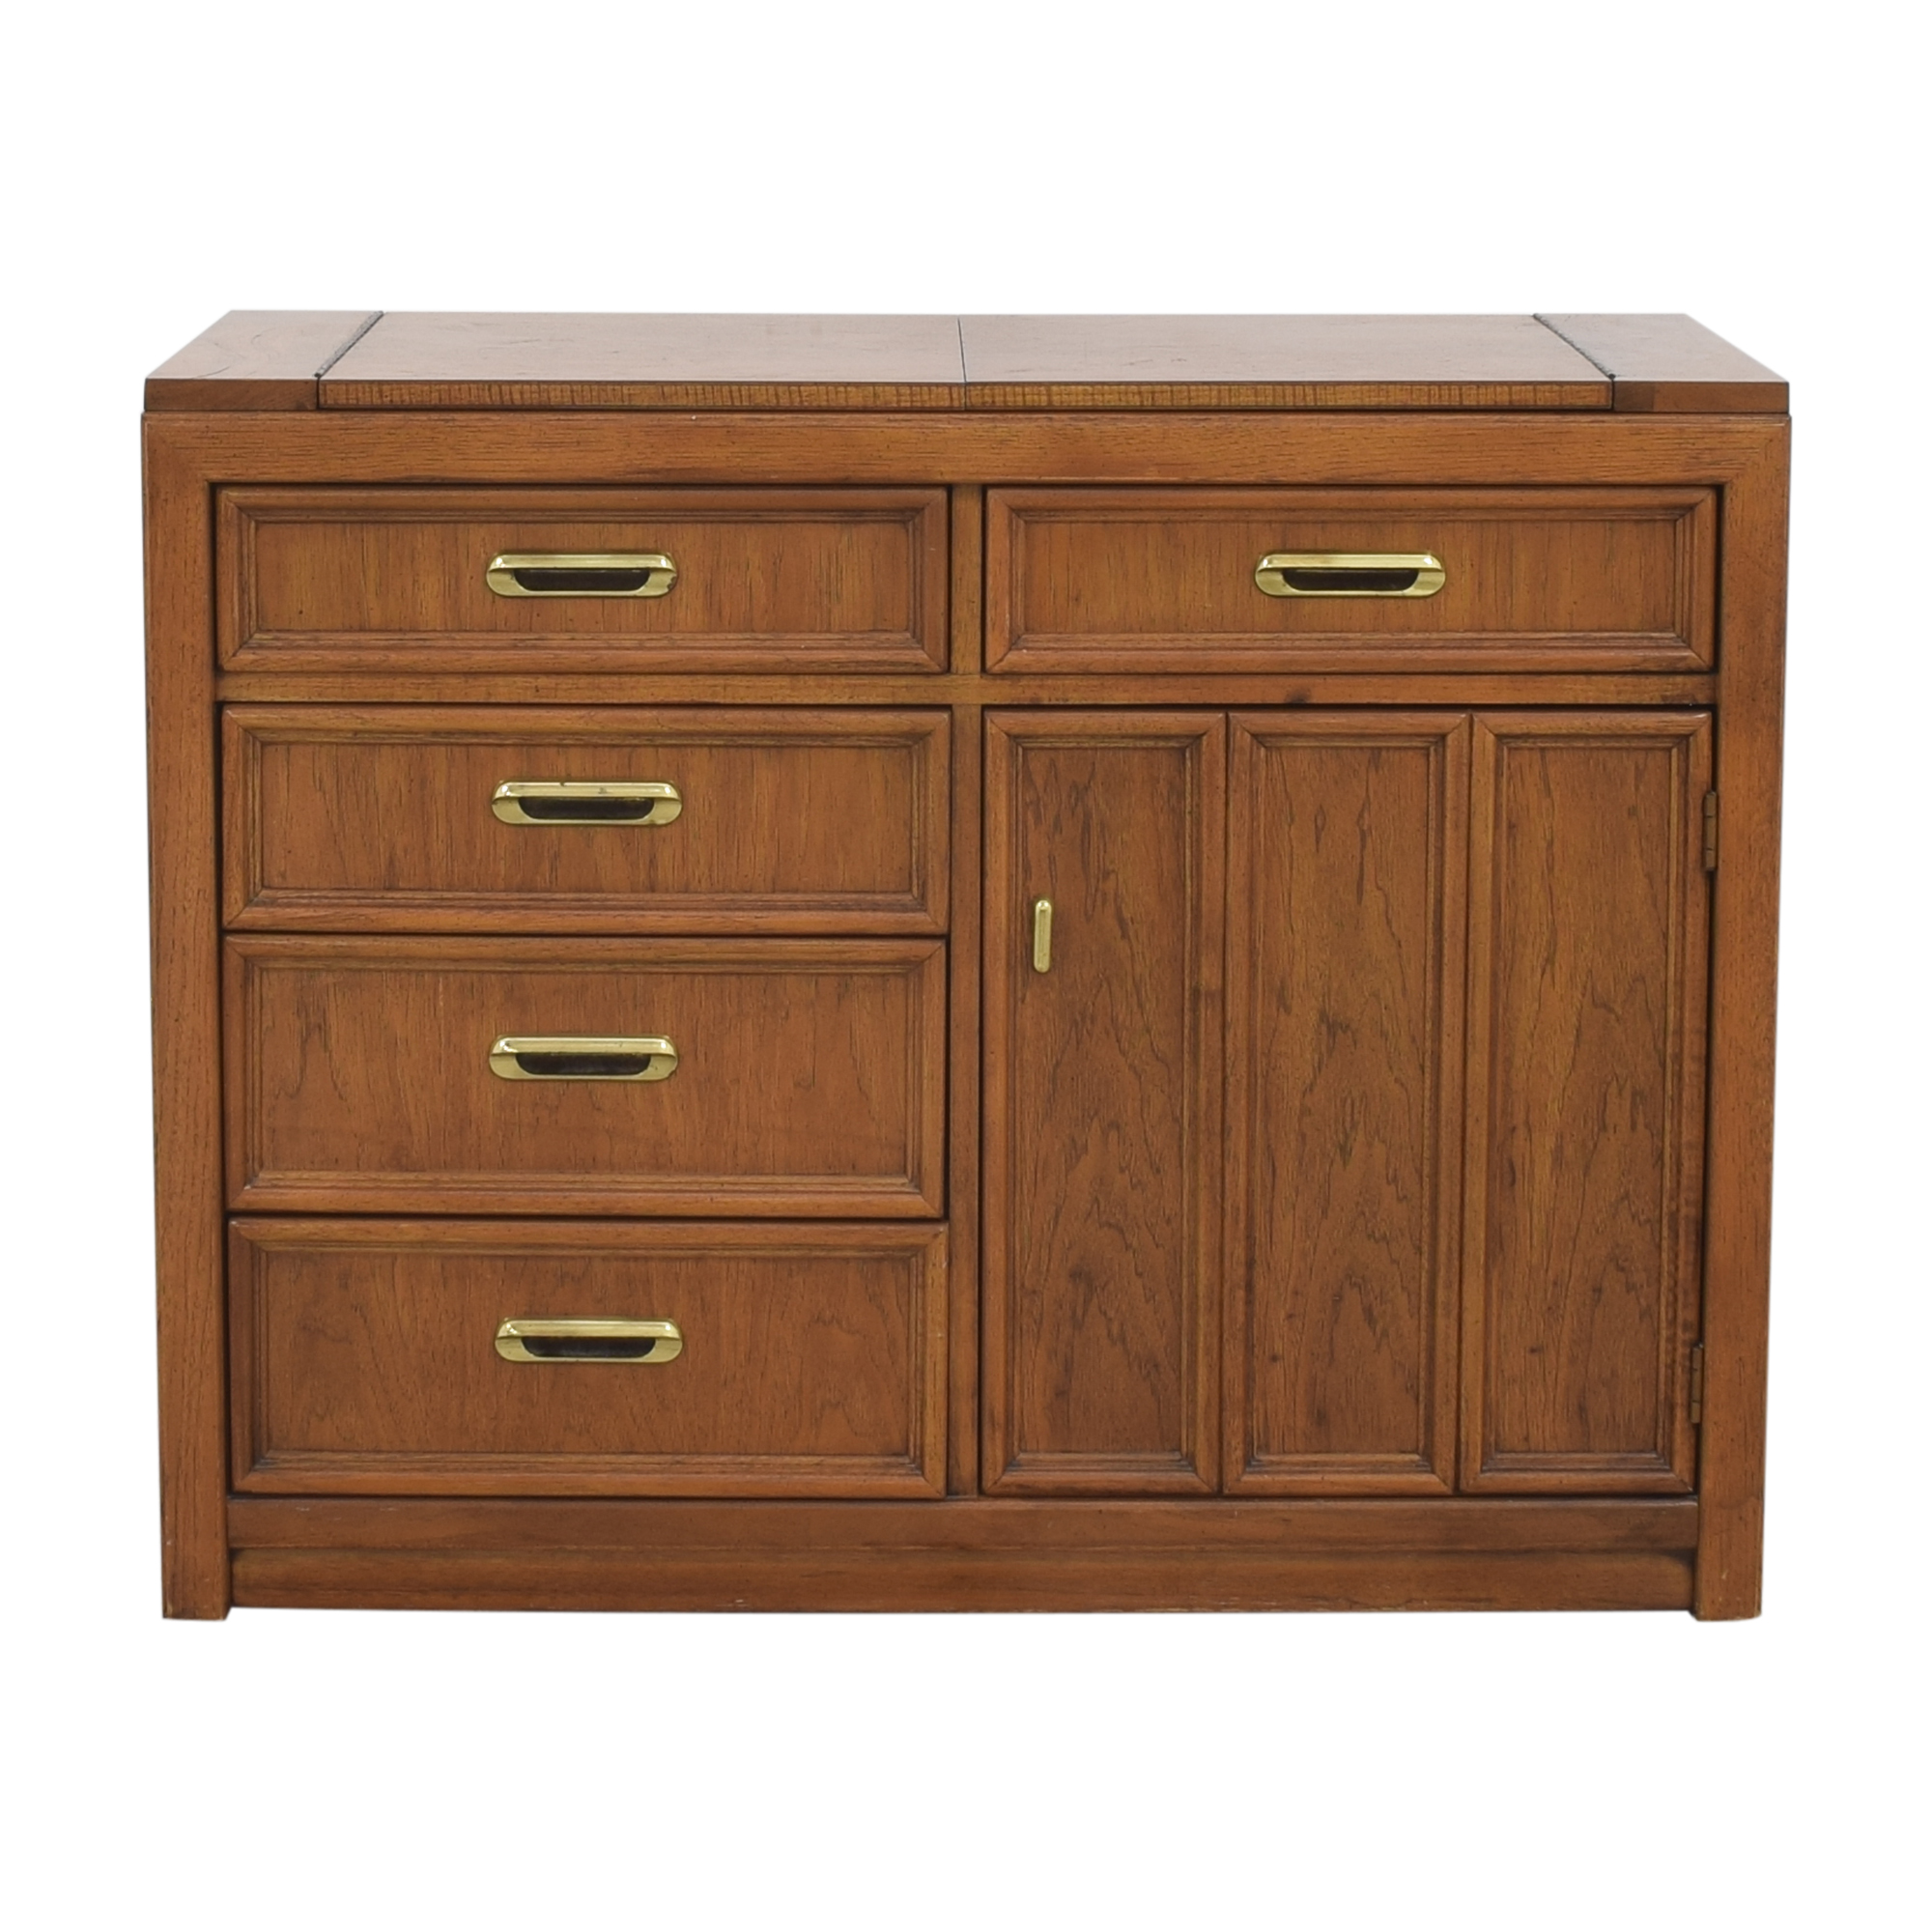 Thomasville Thomasville Flip-Top Server Buffet Cabinets & Sideboards